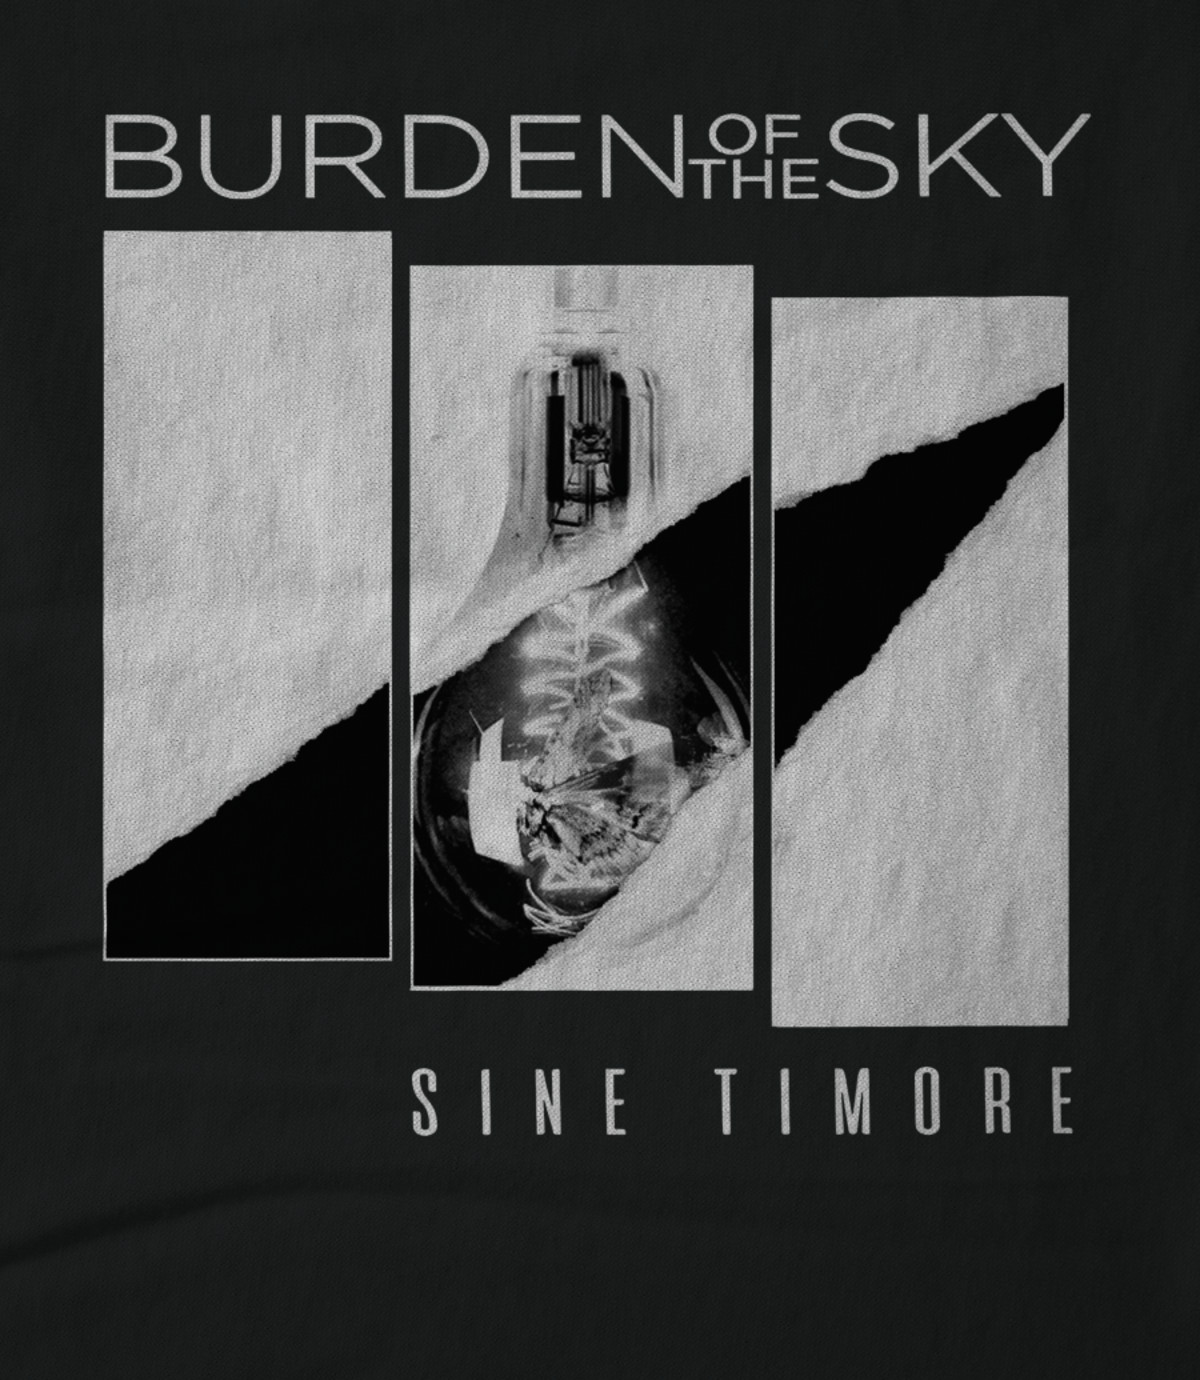 Burden of the sky sine timore red 1556256508